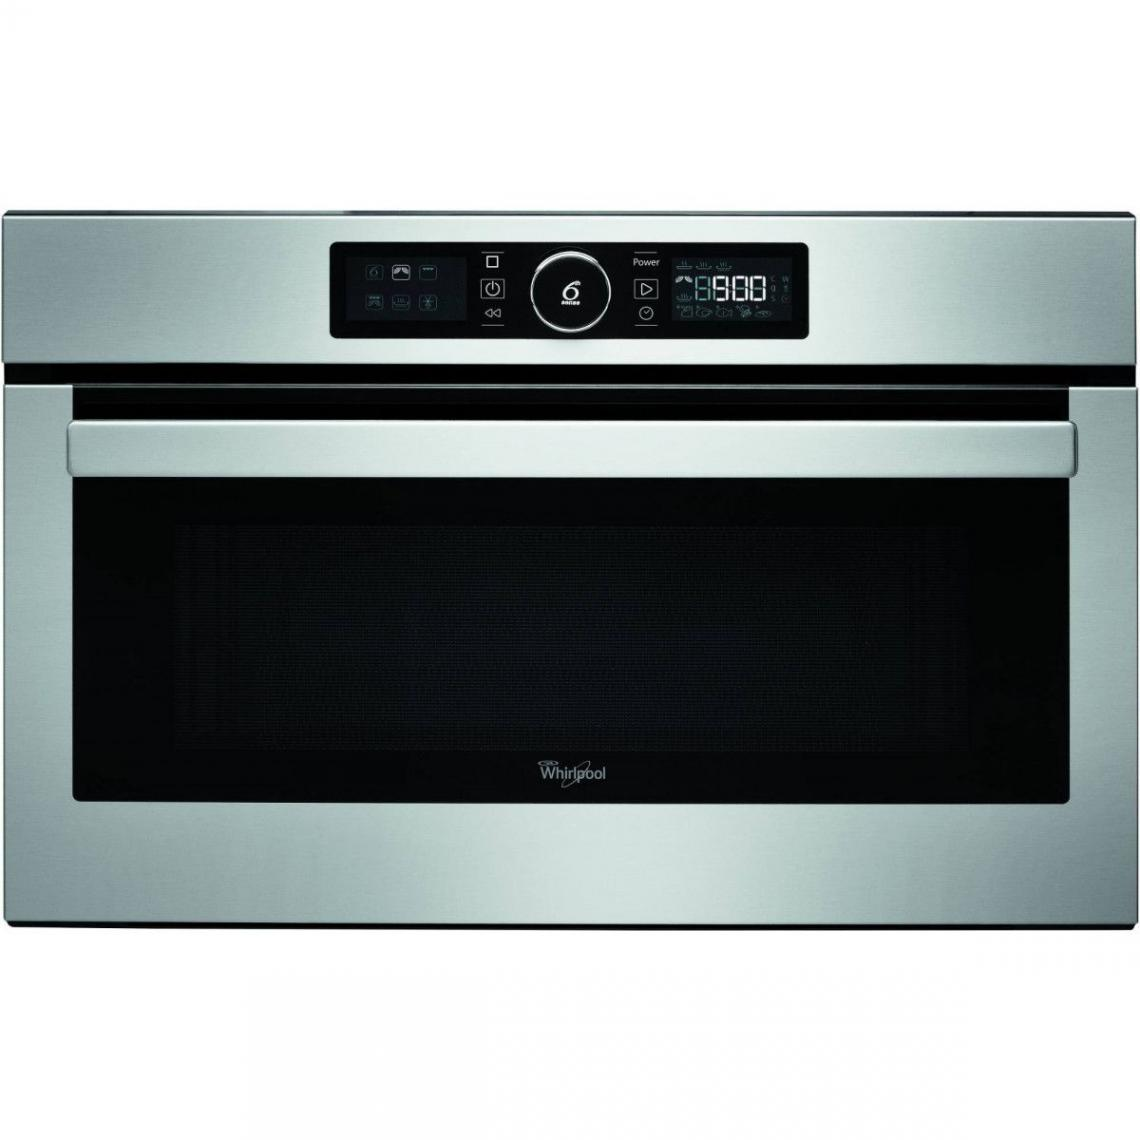 whirlpool Micro-ondes Encastrable 31l Whirlpool 800w 59.5cm, Amw 730 Ix